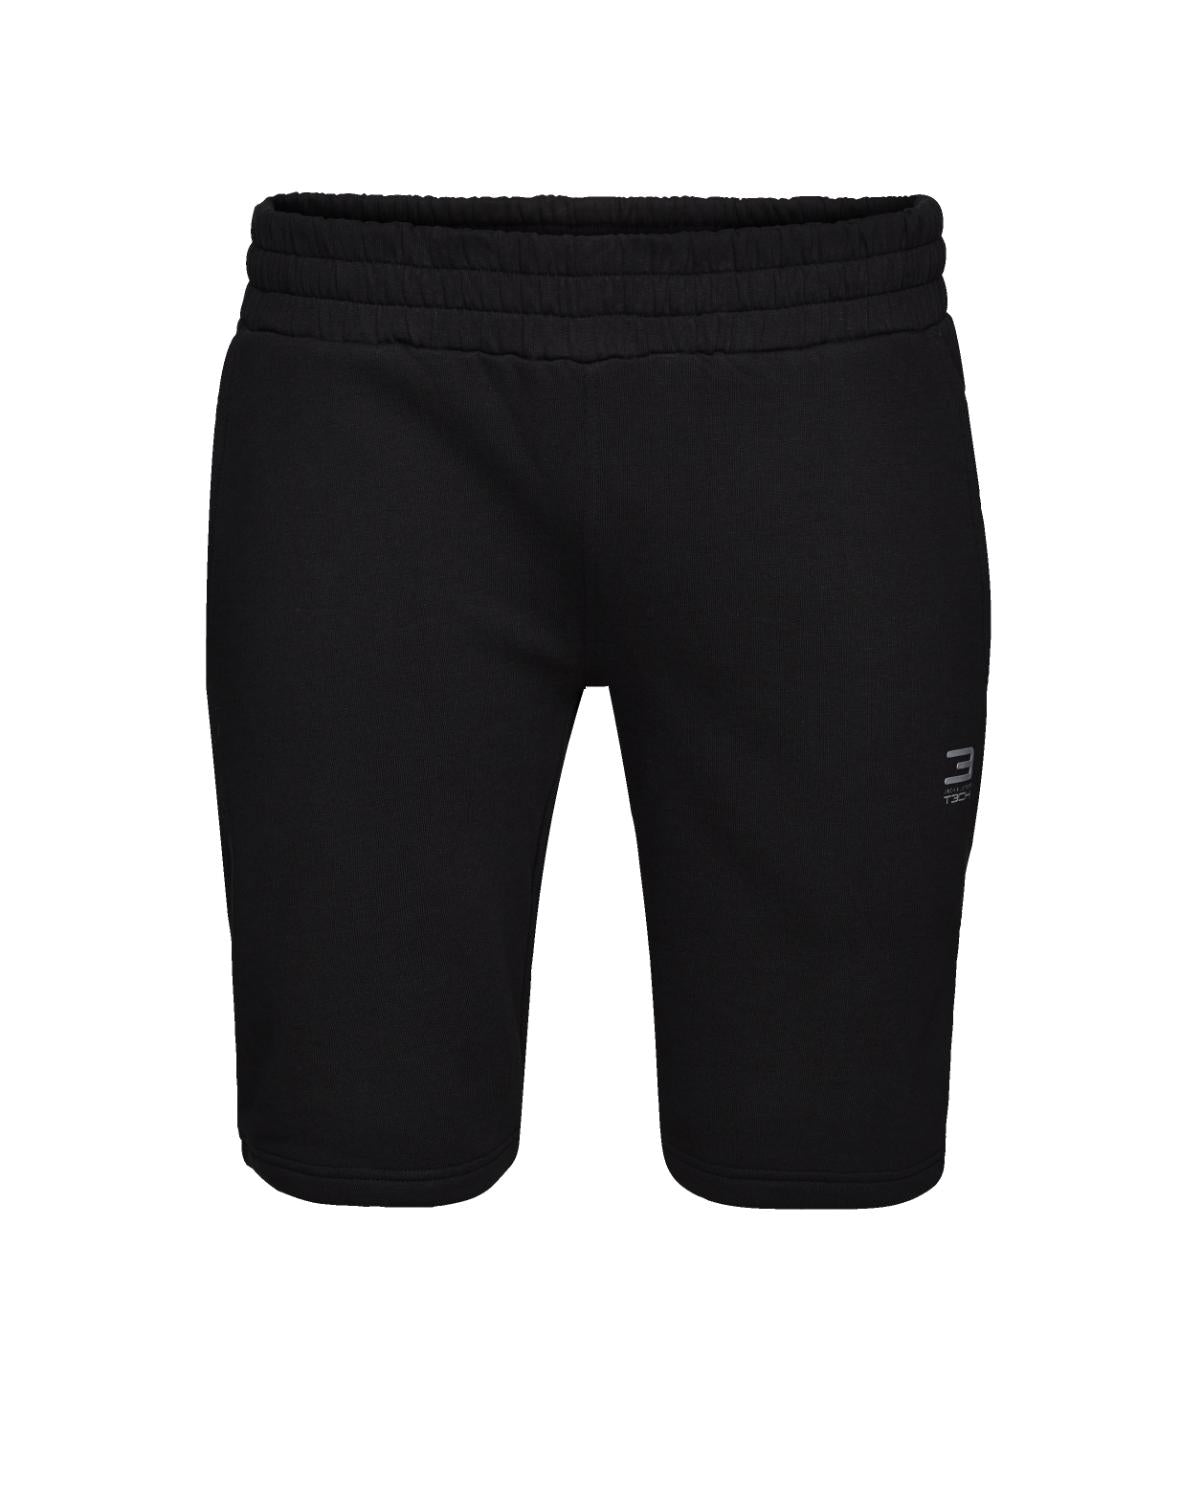 Short-Slider sweat short